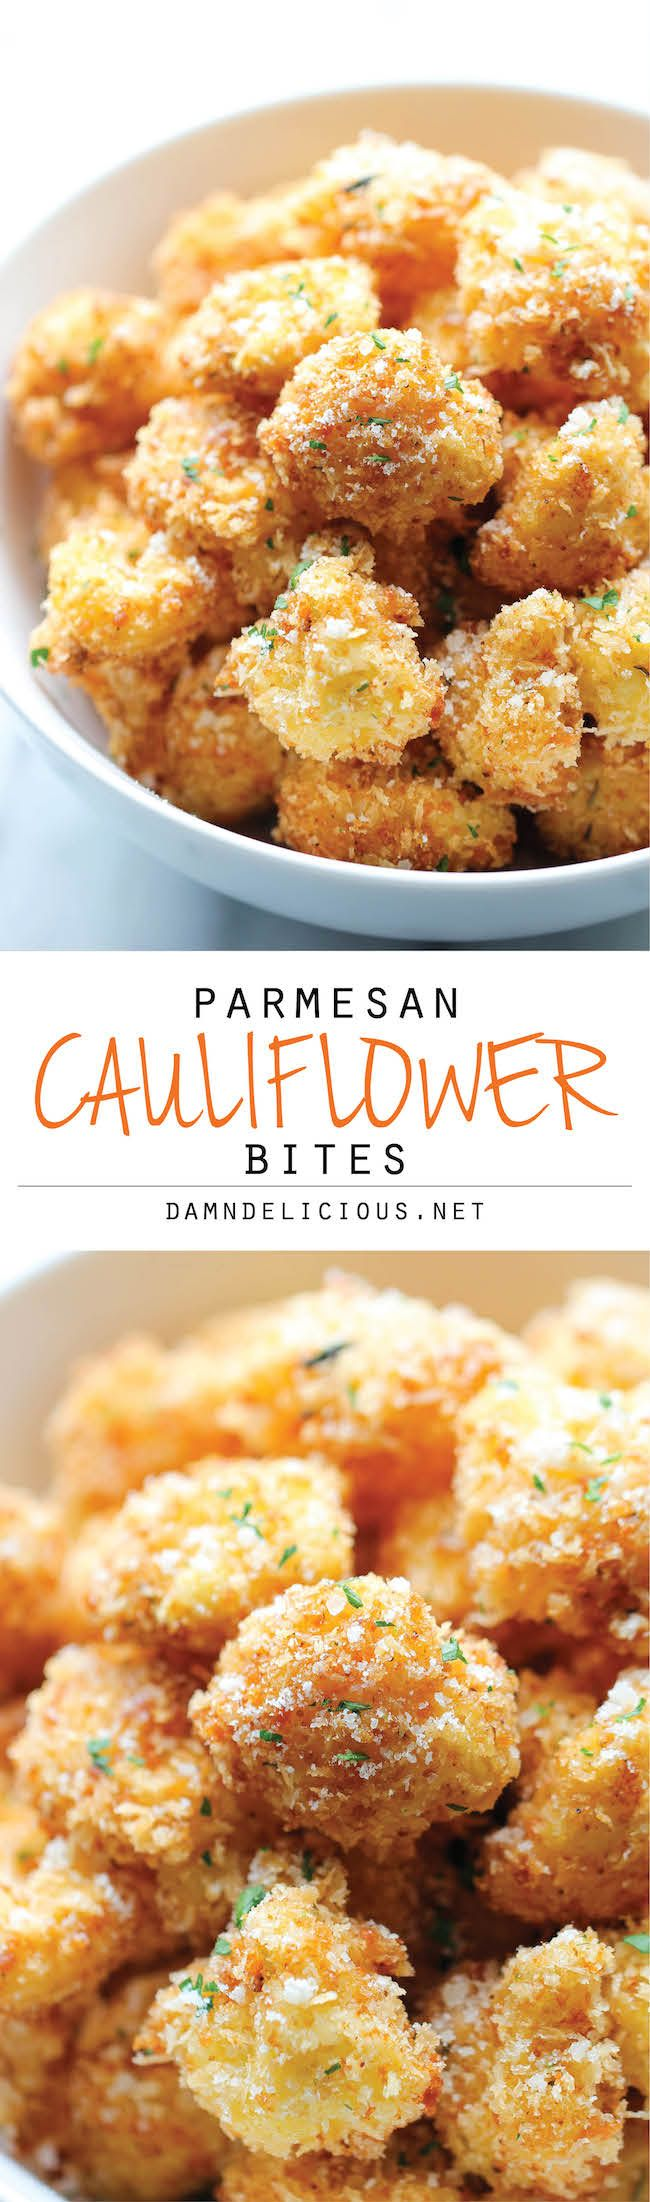 Parmesan Cauliflower Bites - Crisp, crunchy cauliflower bites that even the pickiest of eaters will love. Perfect as an appetizer or snack!